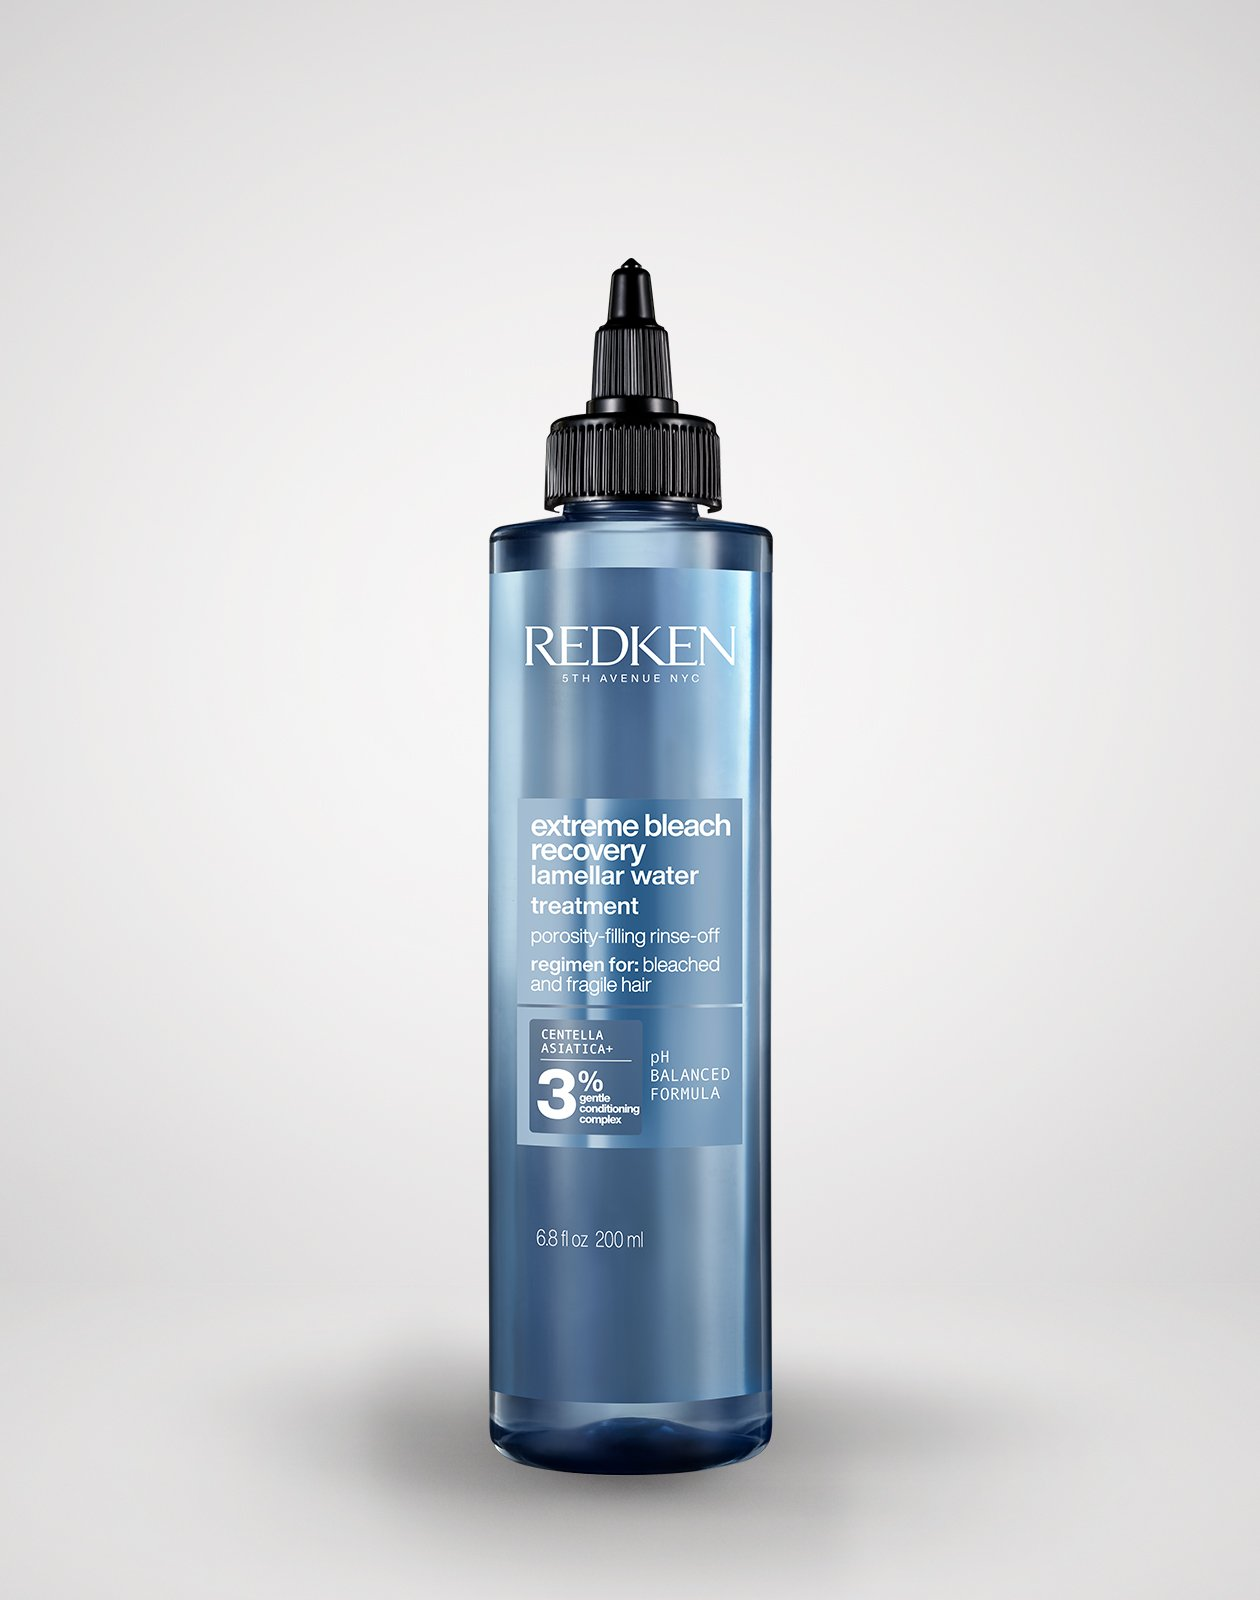 Redken-2020-Extreme-Bleach-Recovery-Lamellar-Treatment-Product-Shot-1260x1600-Gray